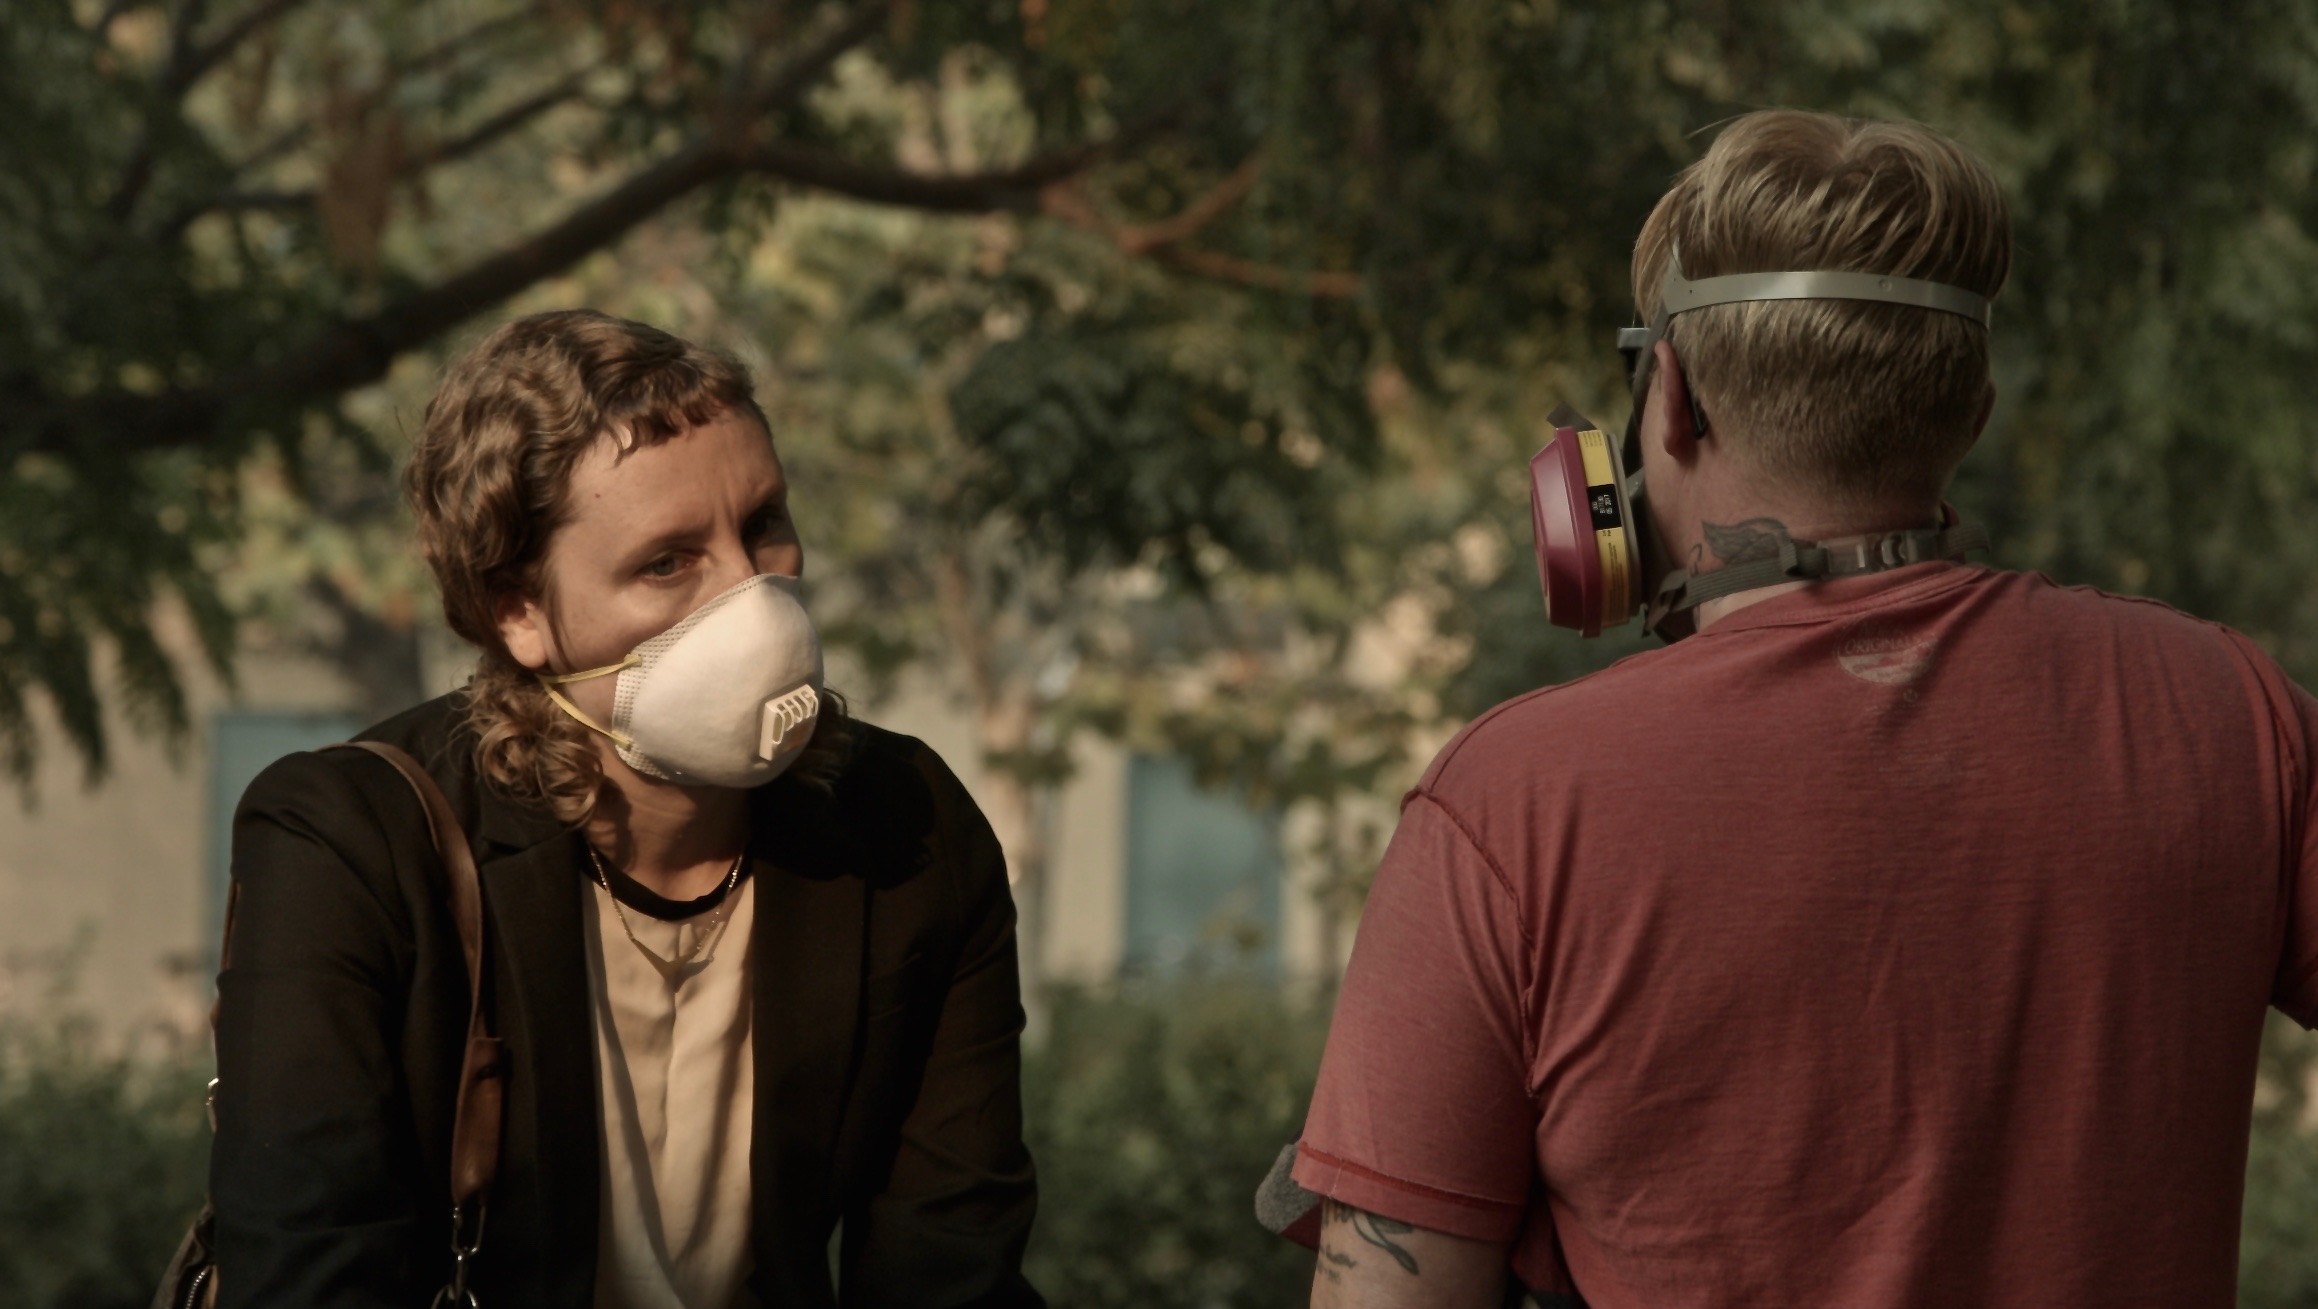 a white woman with brown hair and wearing a mask over her mouth looking at a white person with blonde hair who's also wearing a gas mask